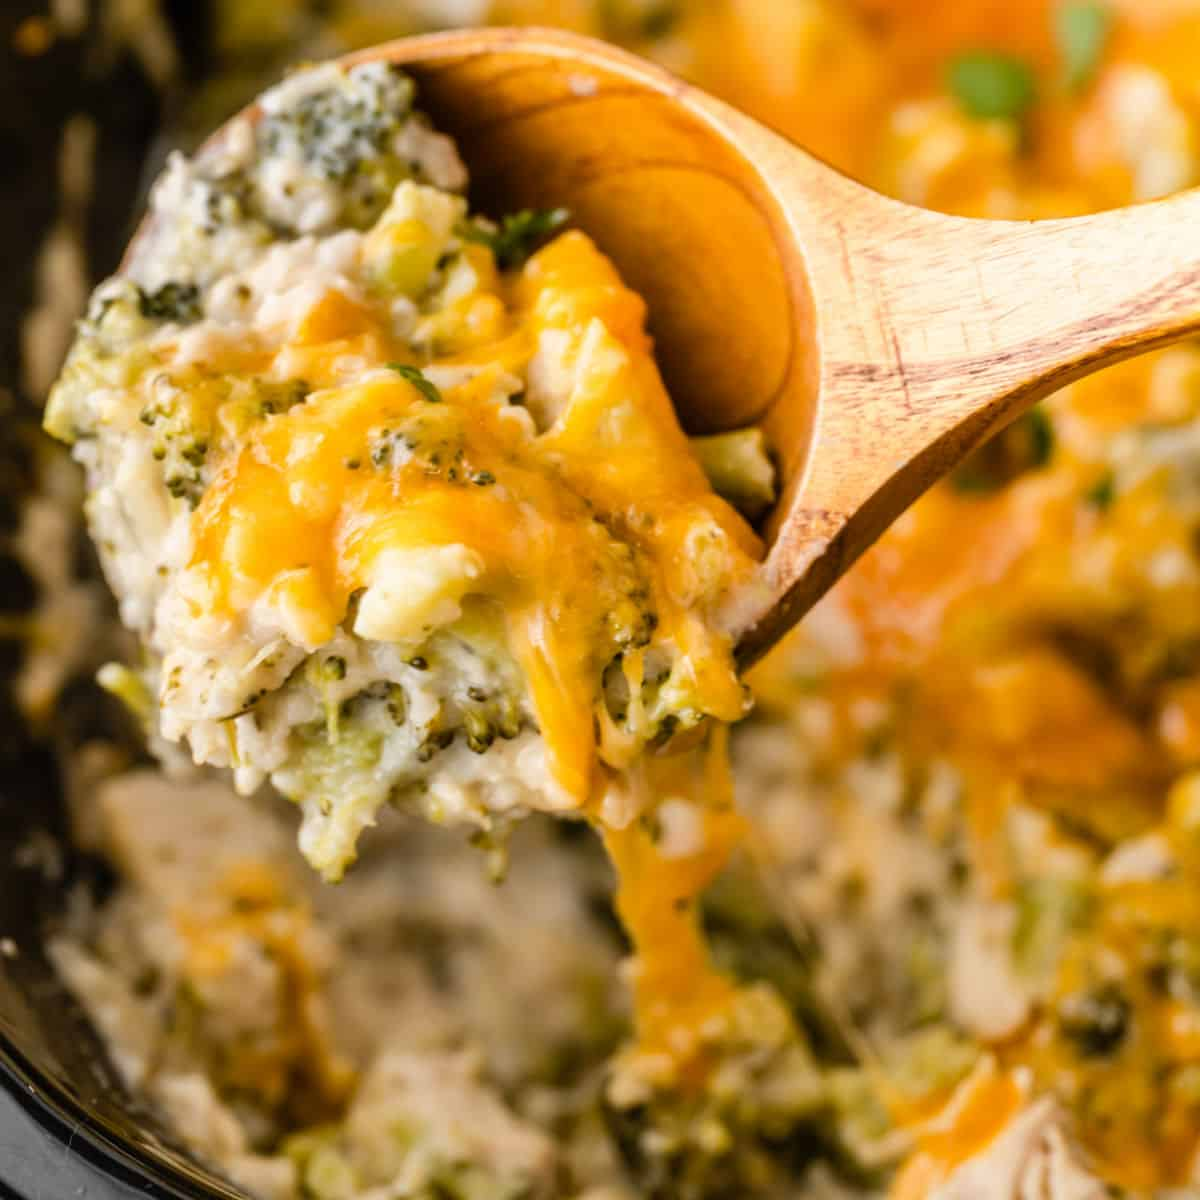 square image of Crock Pot Cheesy Broccoli Chicken and Rice portion on a spoon